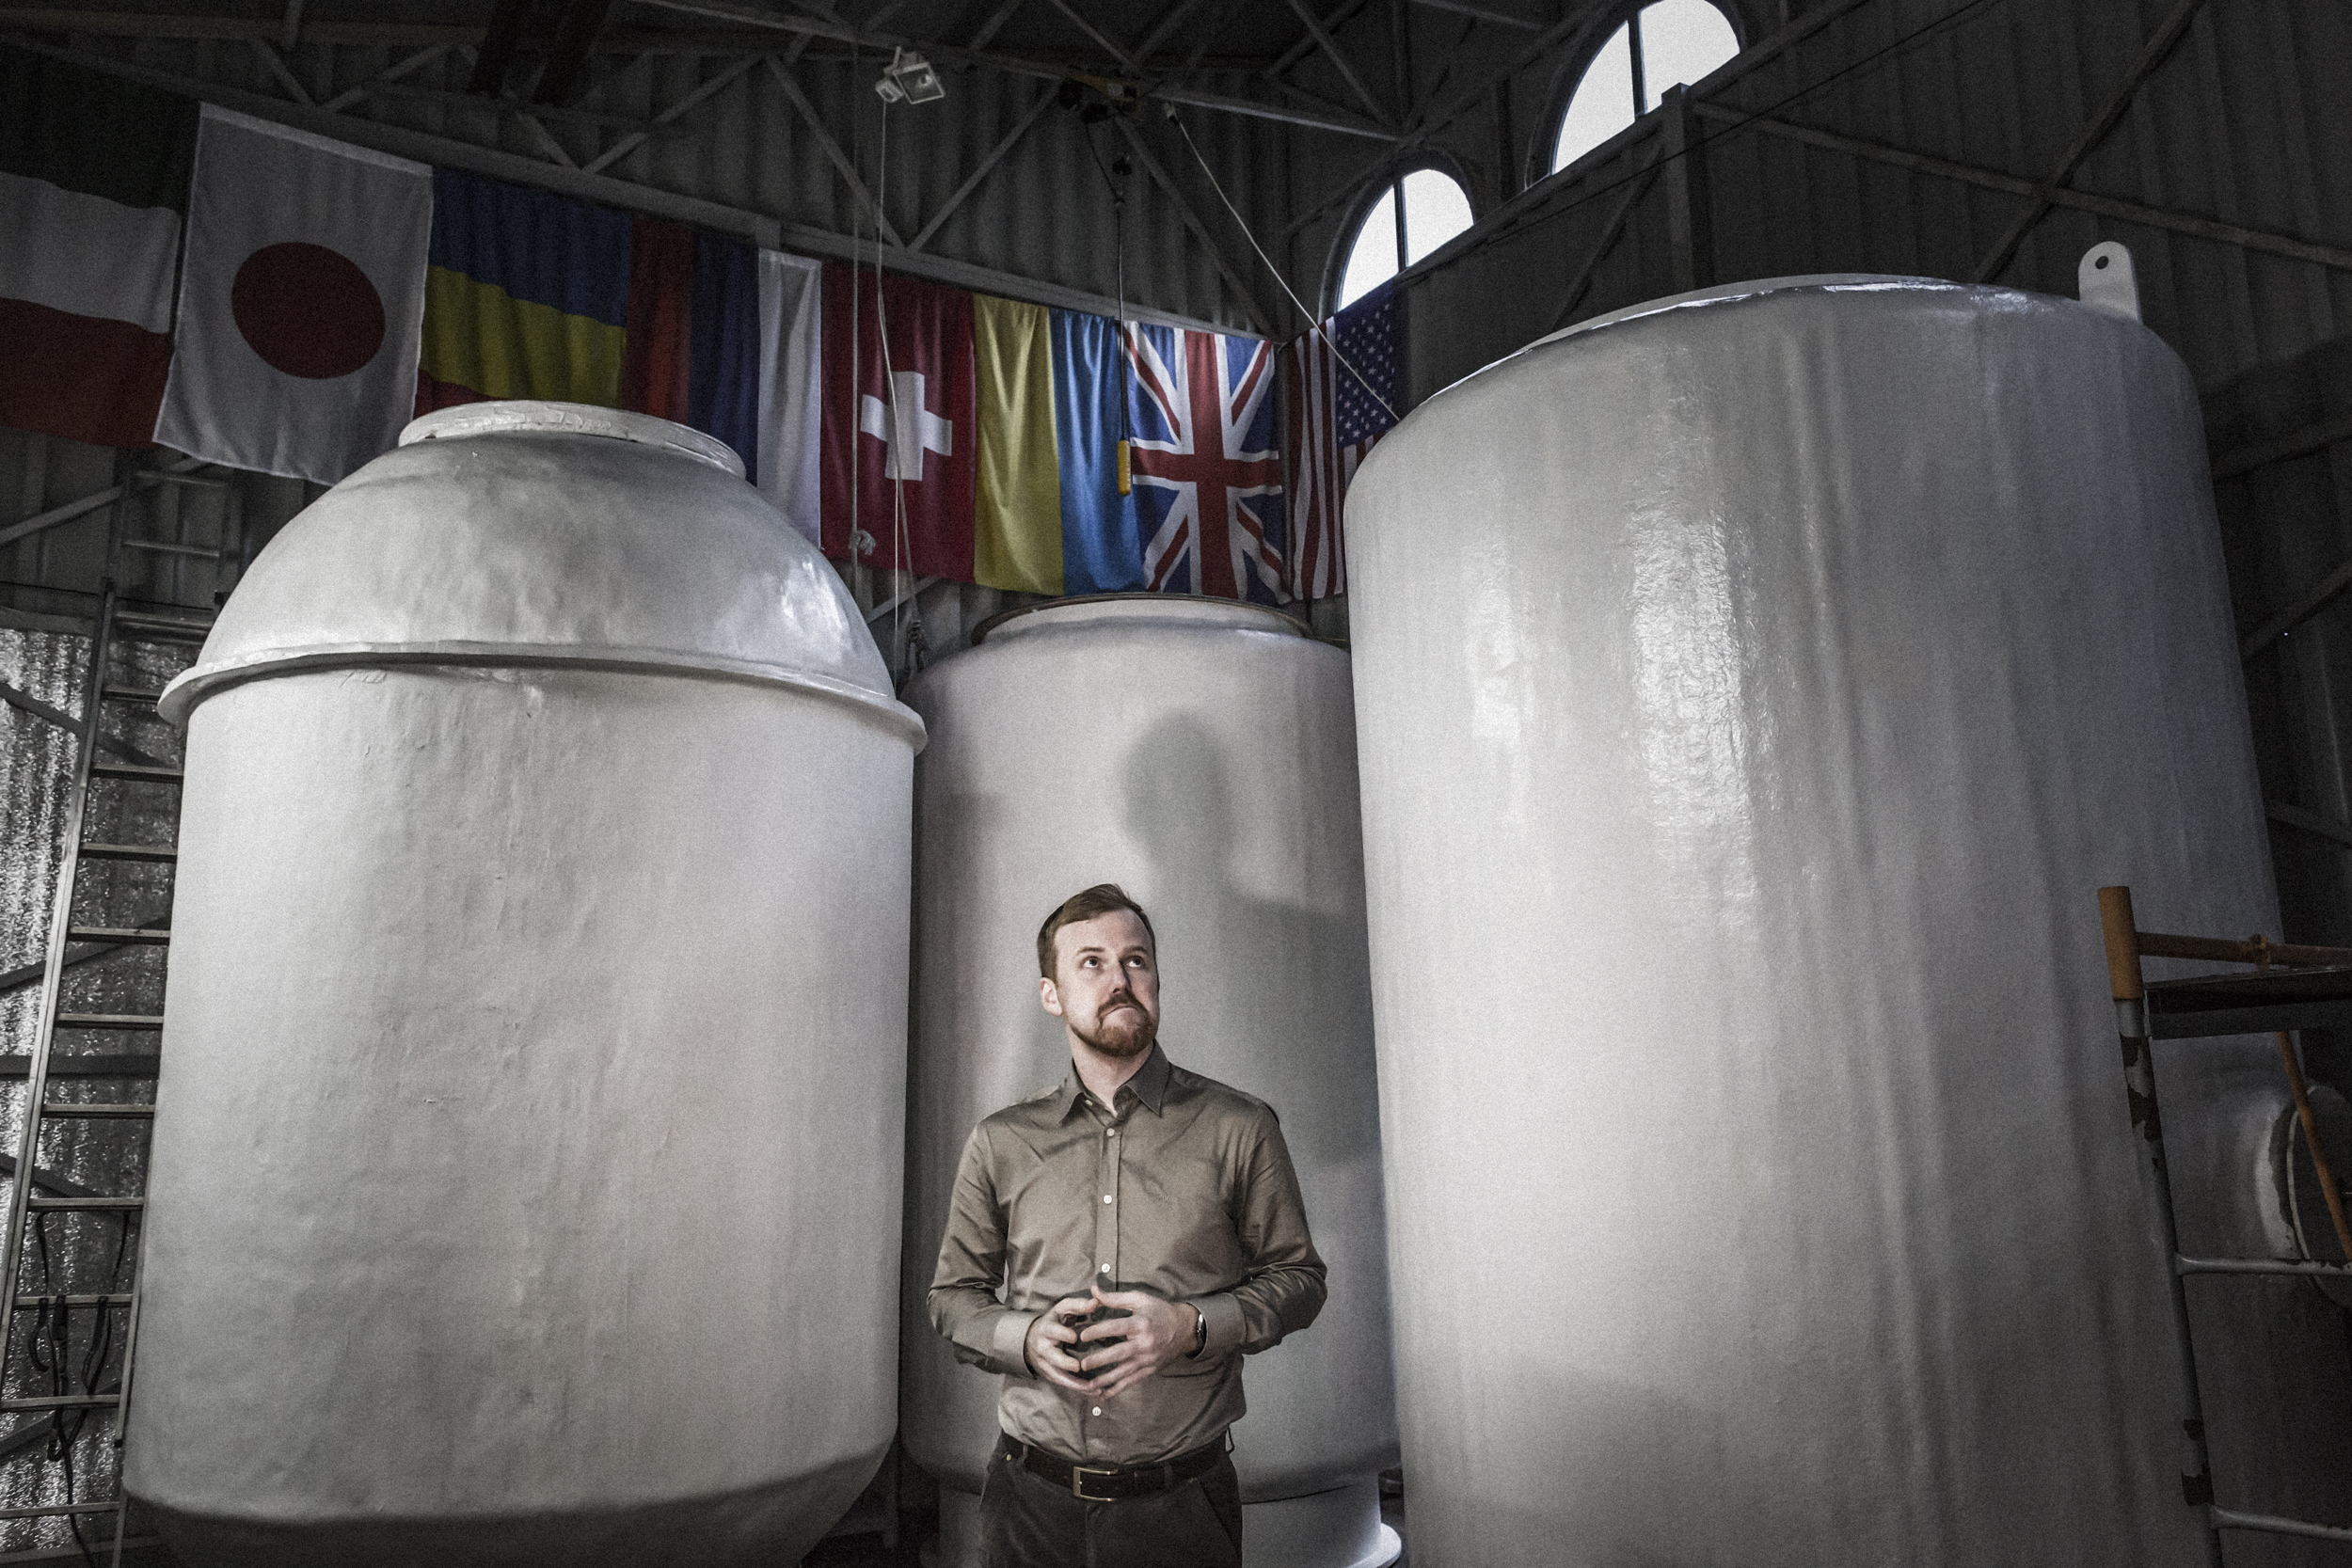 "ergiev Posad, Moscow region, Russian federation, June 2017. Danila Medvedev, member of the Governing Council of the Russian Transhumanism Movement and Kriorus founder in May 2005. In the background the three dewars in which the patients' bodies are cryopreserved. The three ""Pots"" are classified as Anabiosis 1, 2 and 3, and each of them can contain up to 8 bodies."